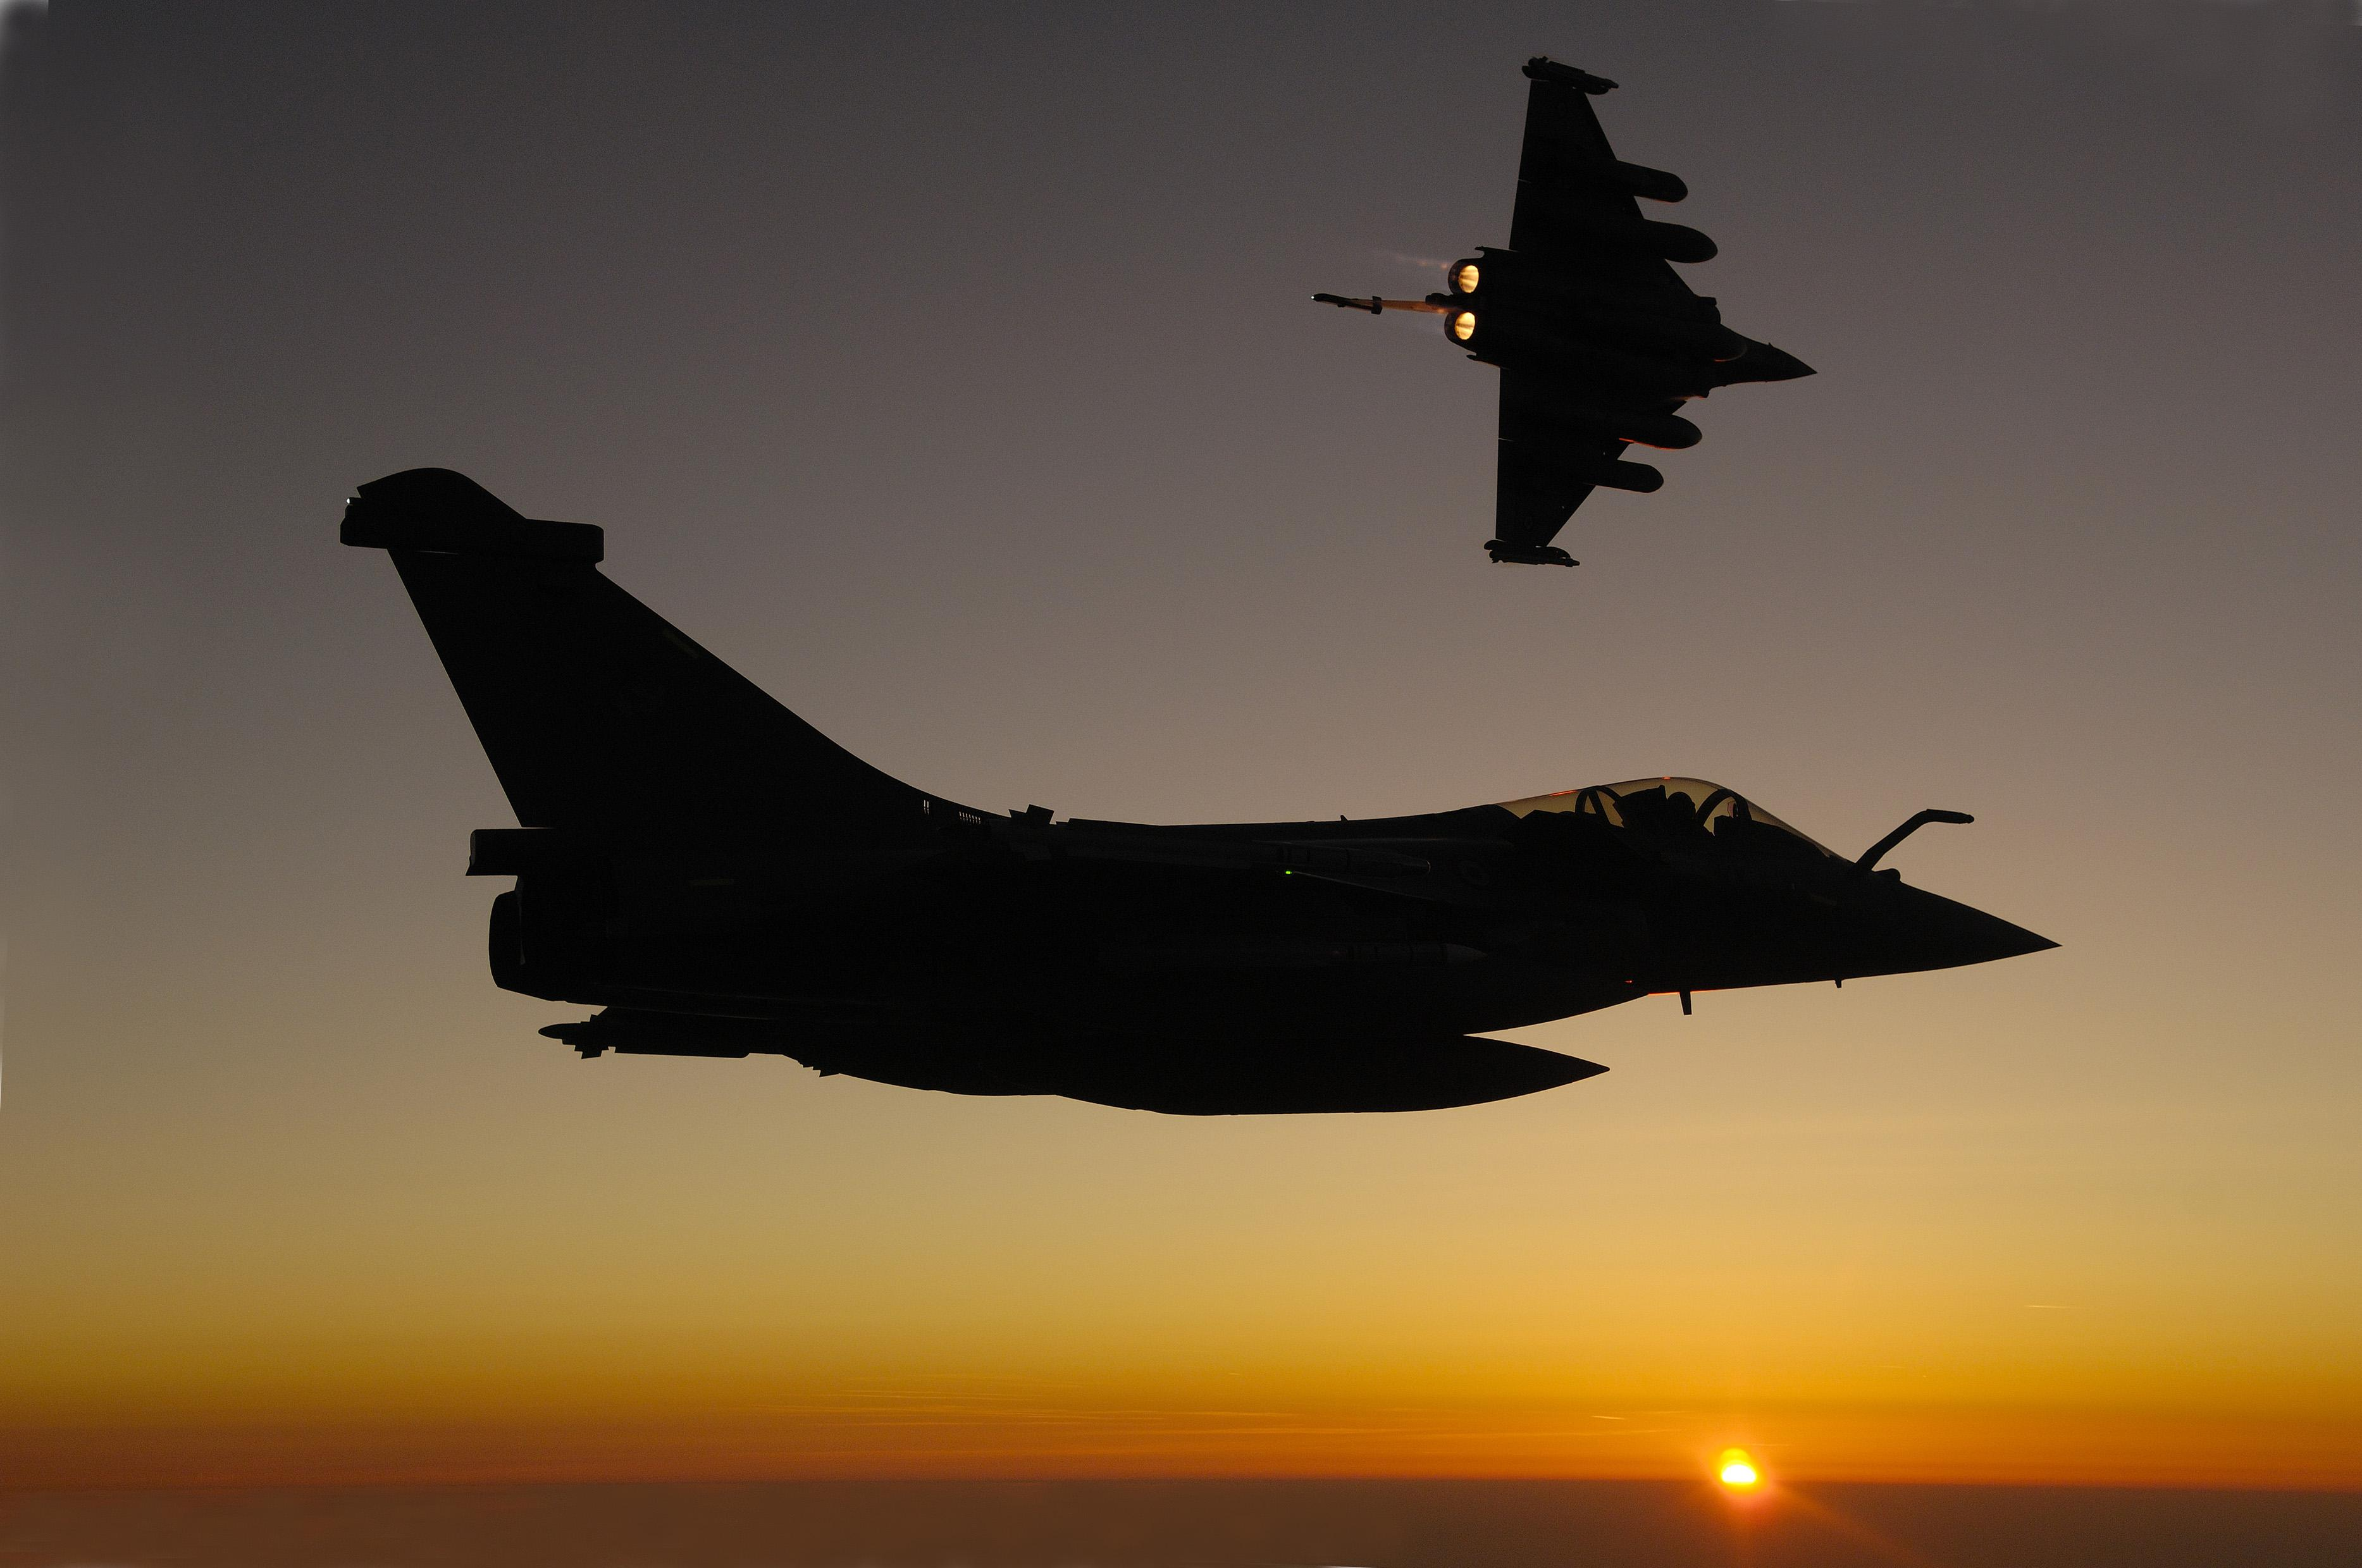 Rafale C and Rafale B in flight - Thalesgroup